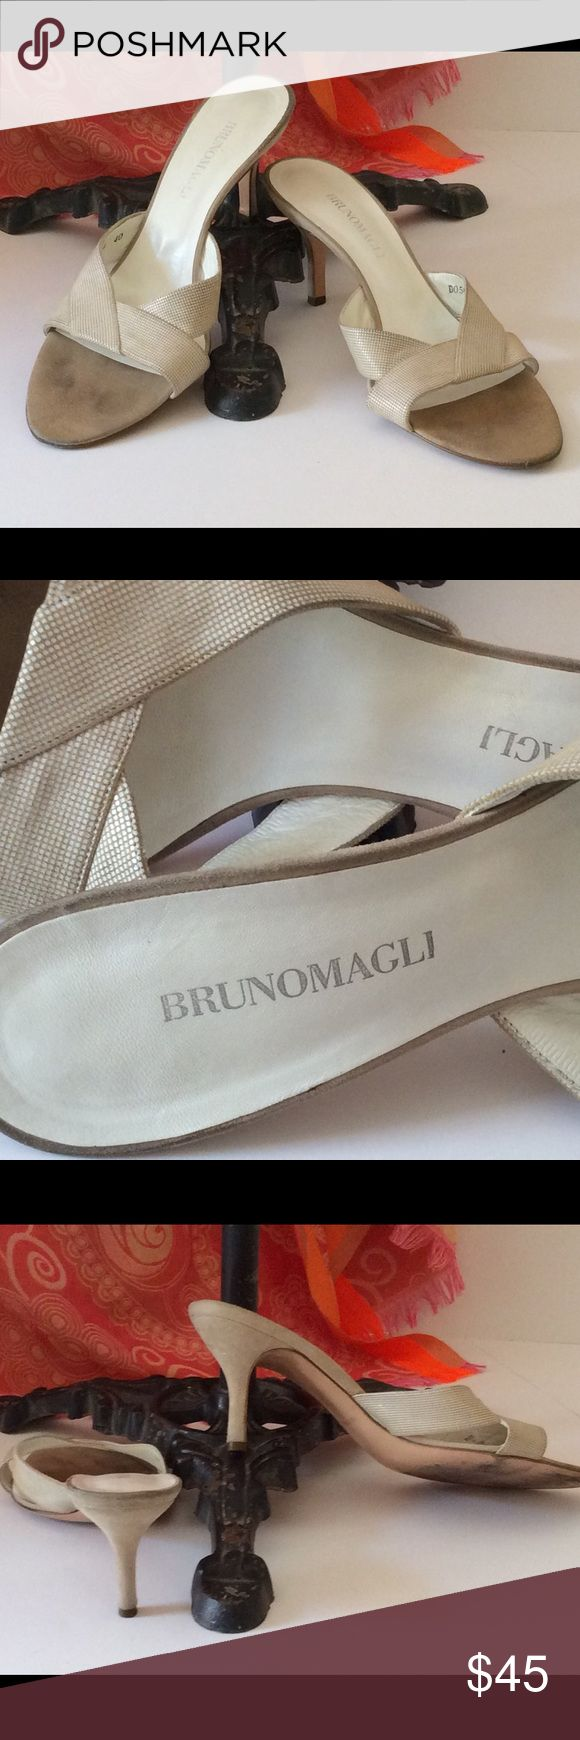 Bruno Magli women's leather mules Gently used suede pattern leather.  Kitten heel. Bruno Magli Shoes Mules & Clogs